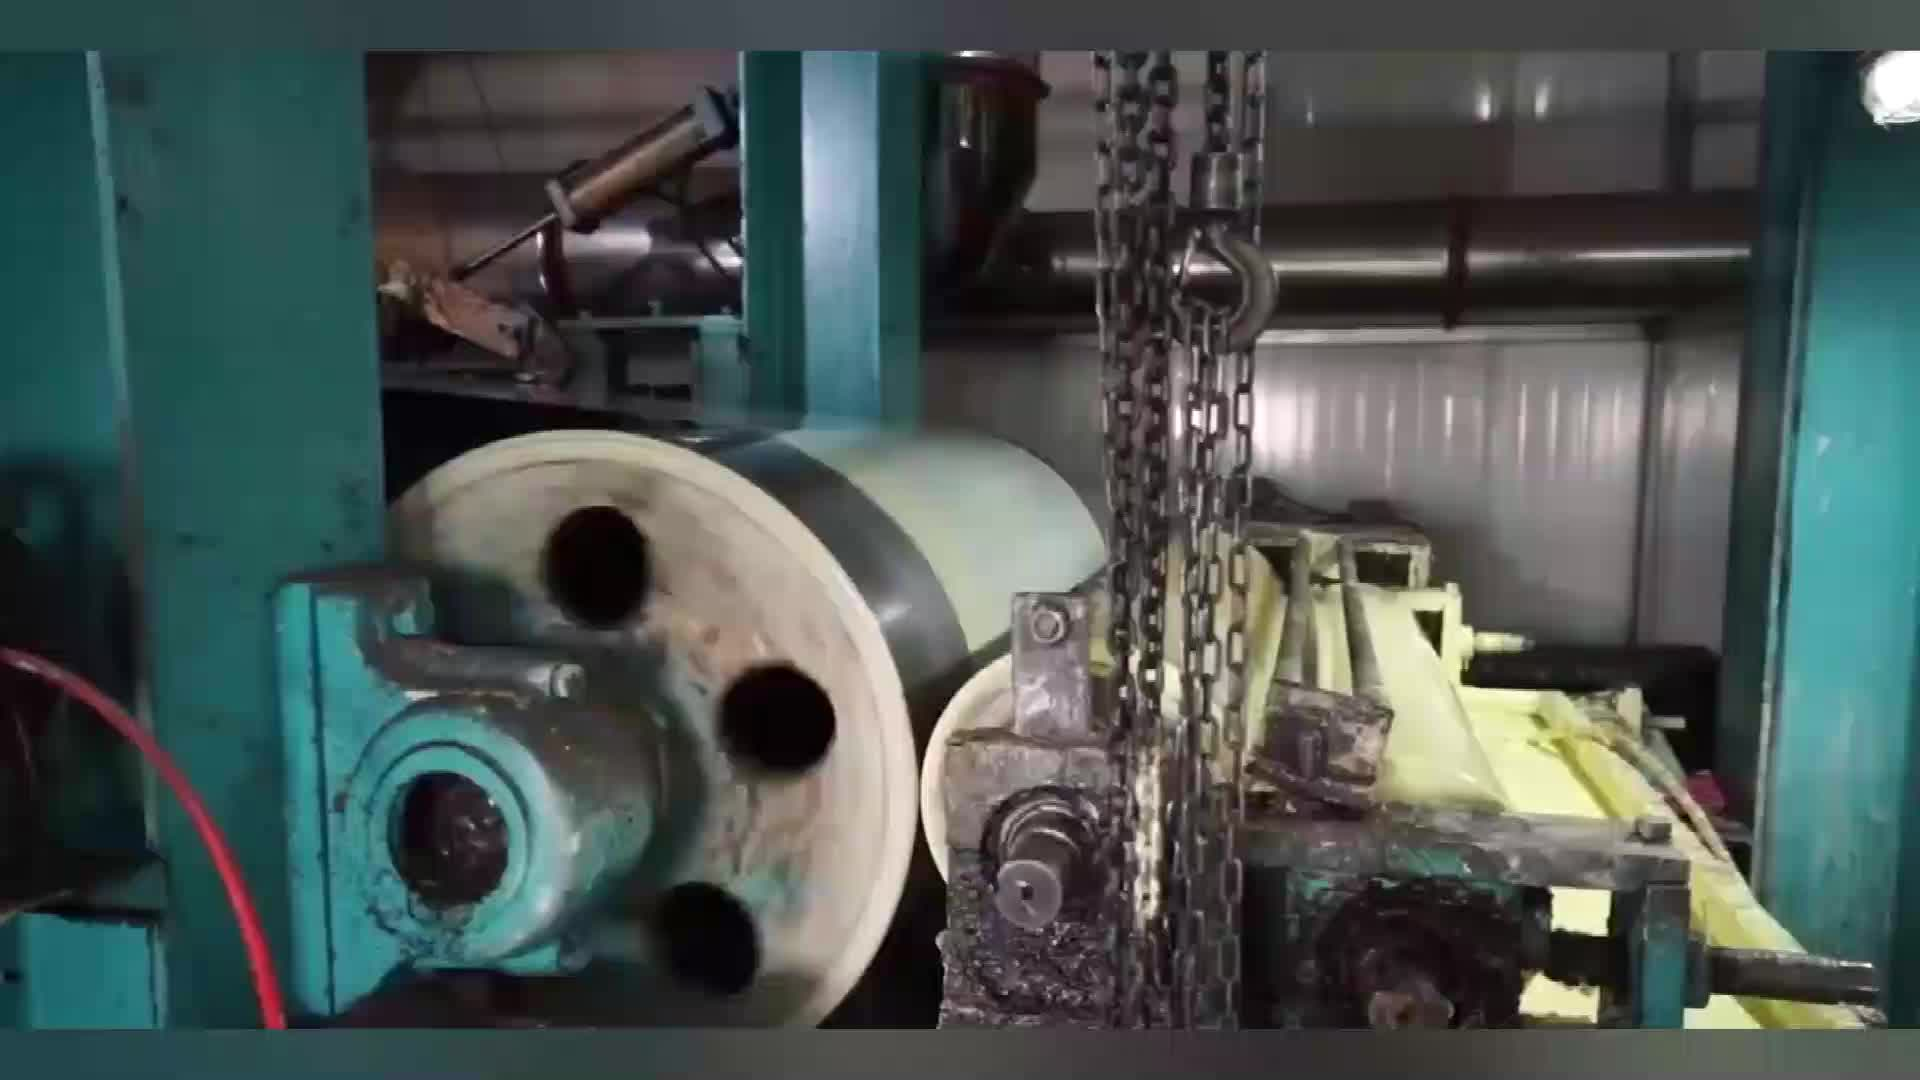 Nanxiang Steel cold rolled ral 3019 ral 3020 ppgi color steel coil